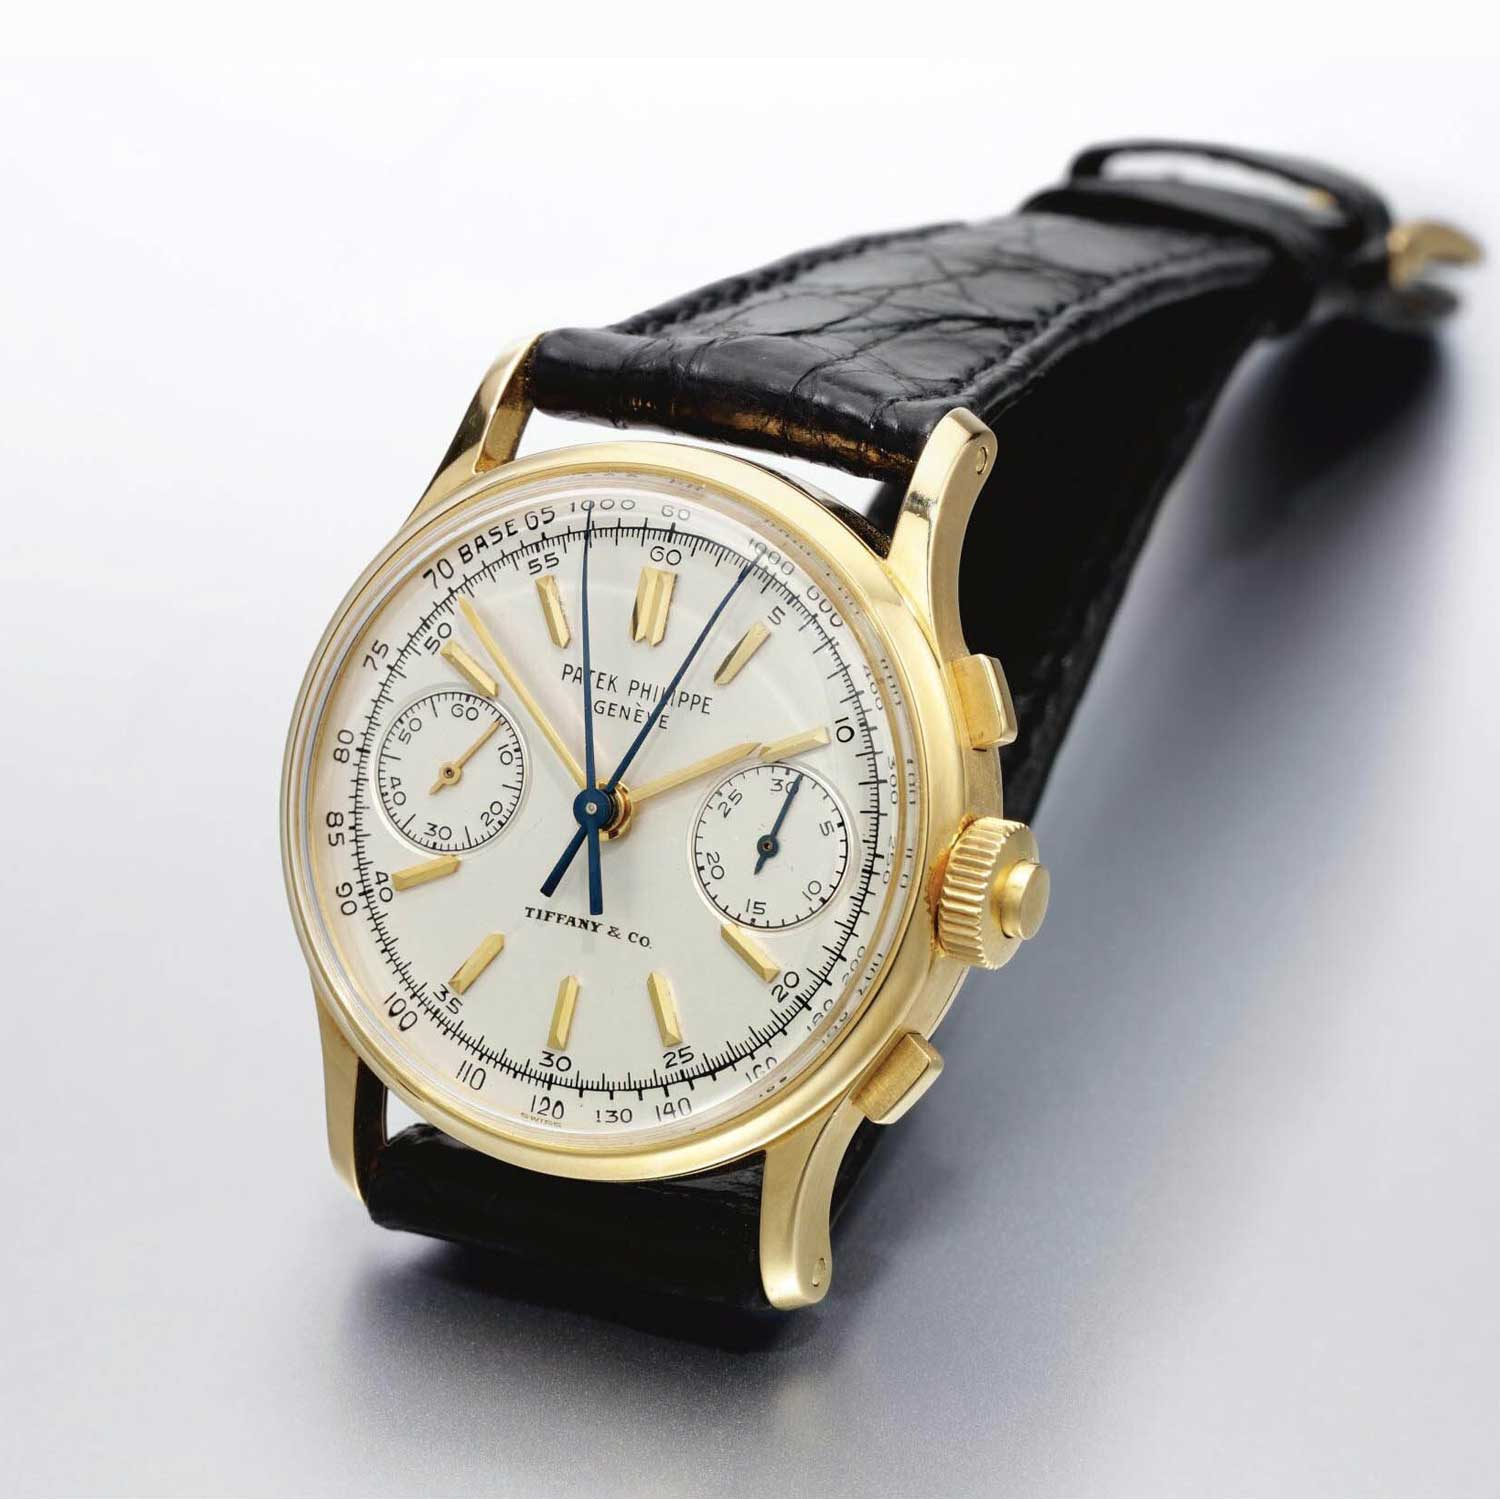 1969 Patek Philippe ref. 1436 yellow gold split second chronograph with Tiffany stamp (Sothebys.com)